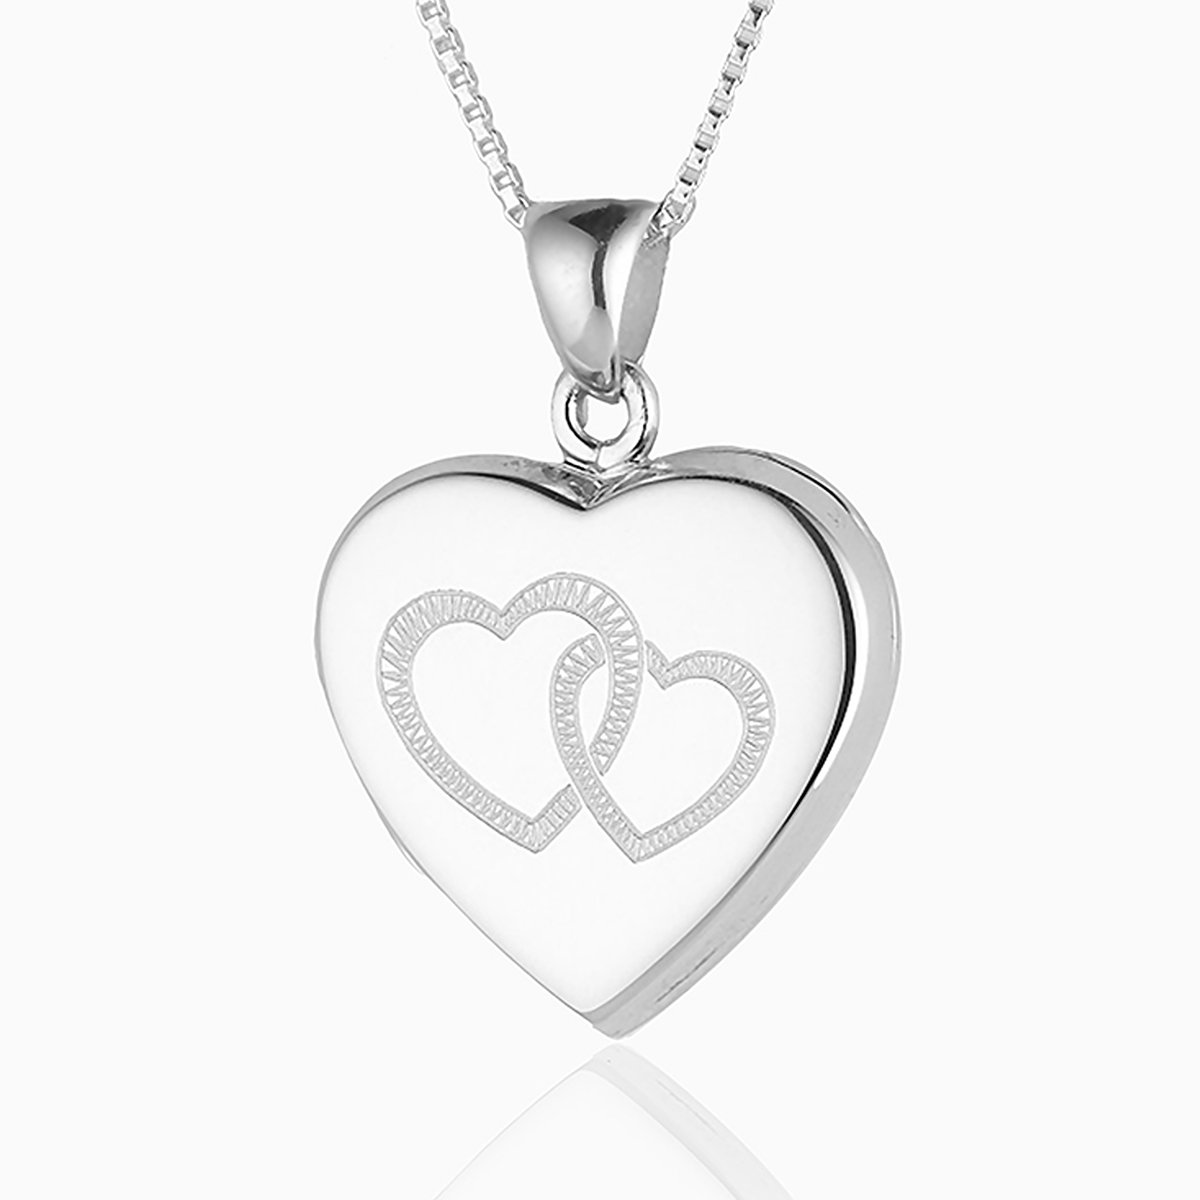 Product title: Entwined Hearts Locket, product type: Locket